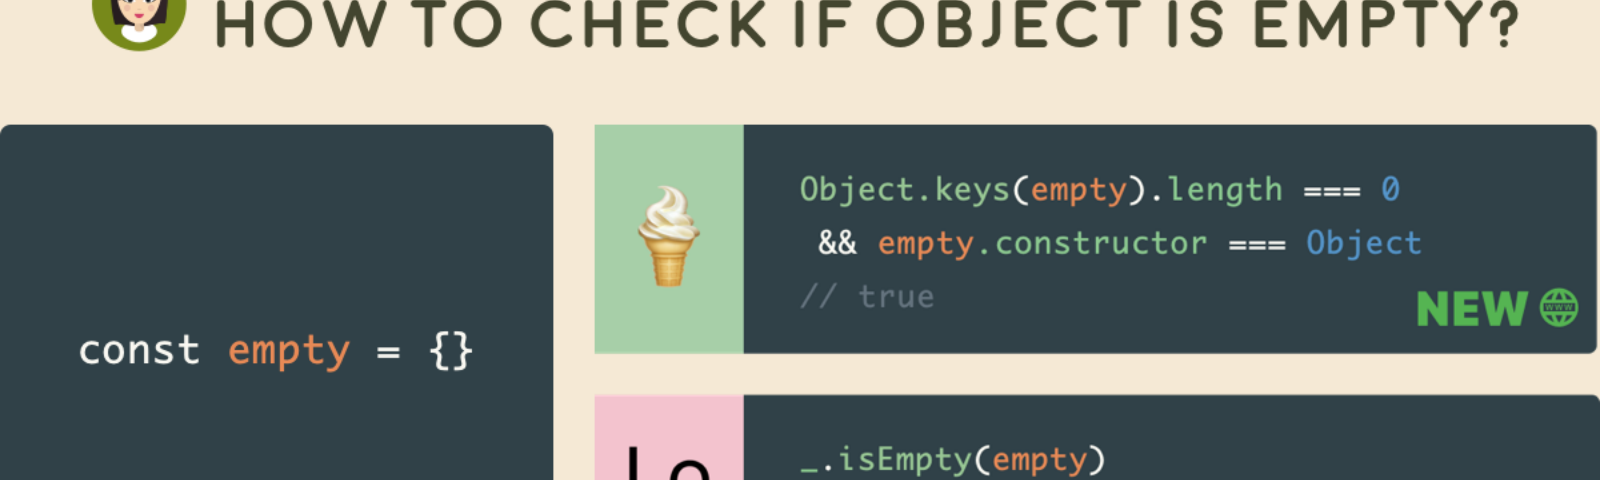 Code snippet of How to Check if Object is Empty in JavaScript for newer browser and older browse